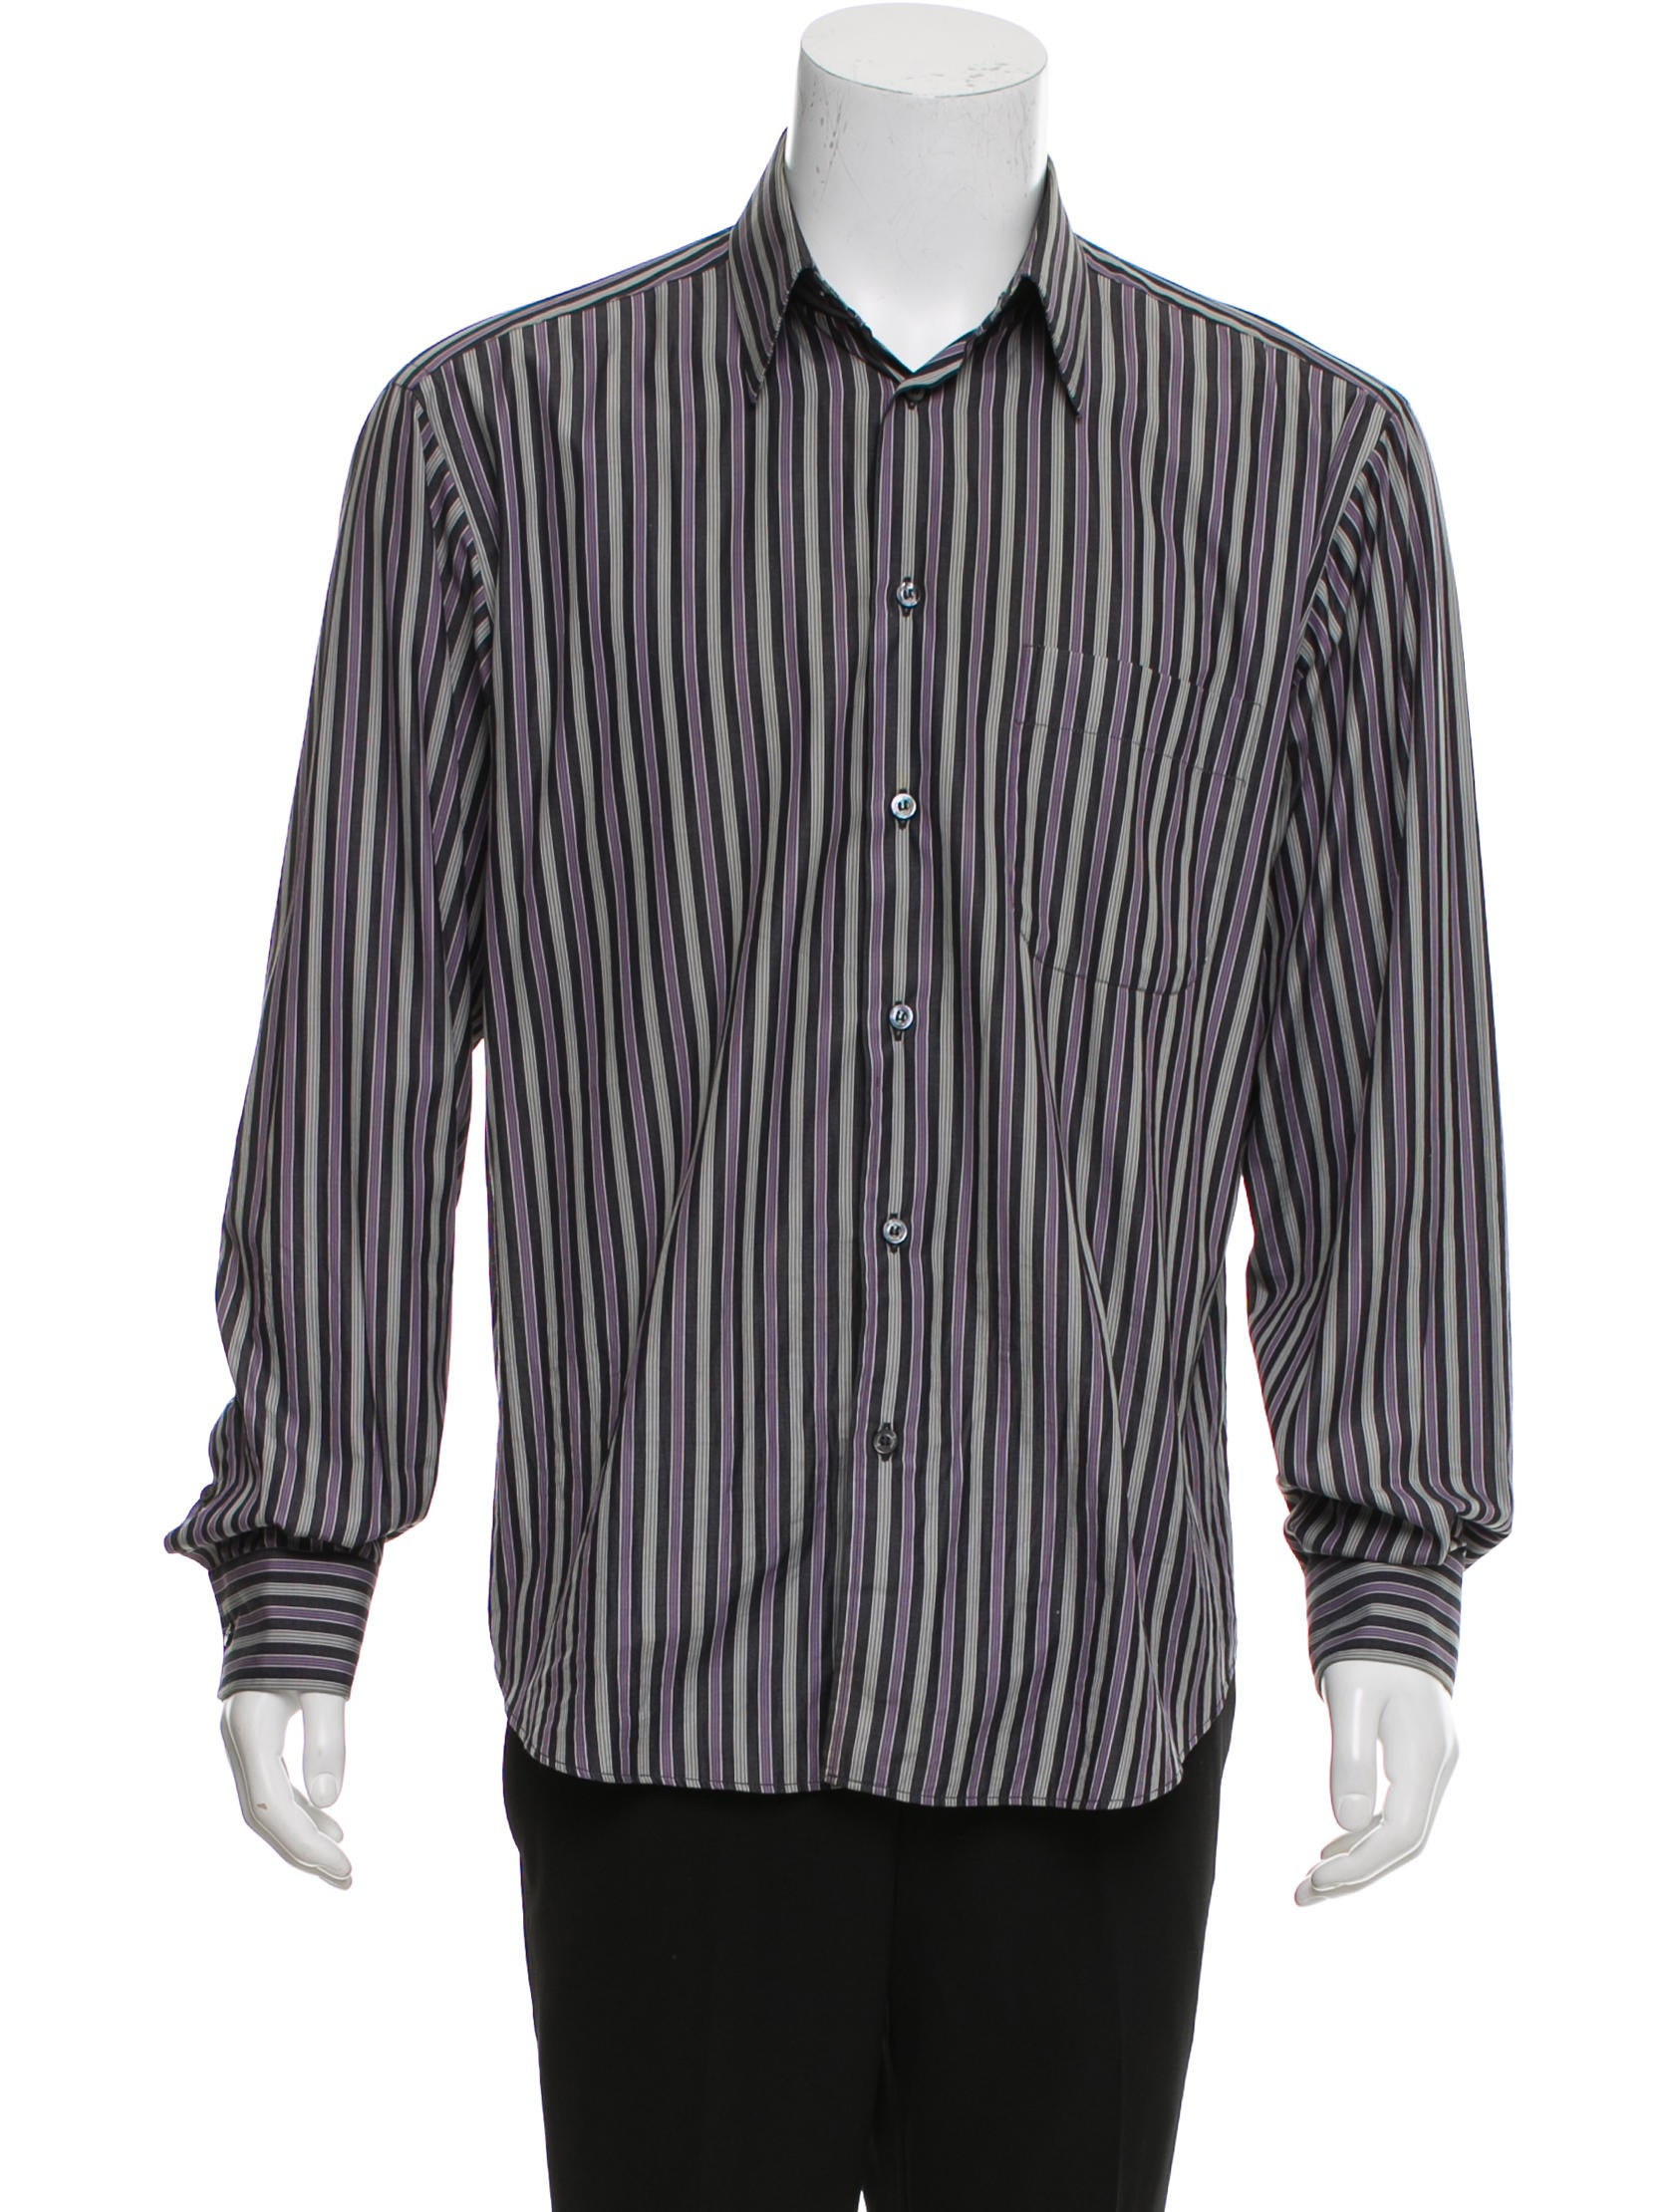 Brioni Striped Button Up Shirt Clothing Bro24642 The Realreal